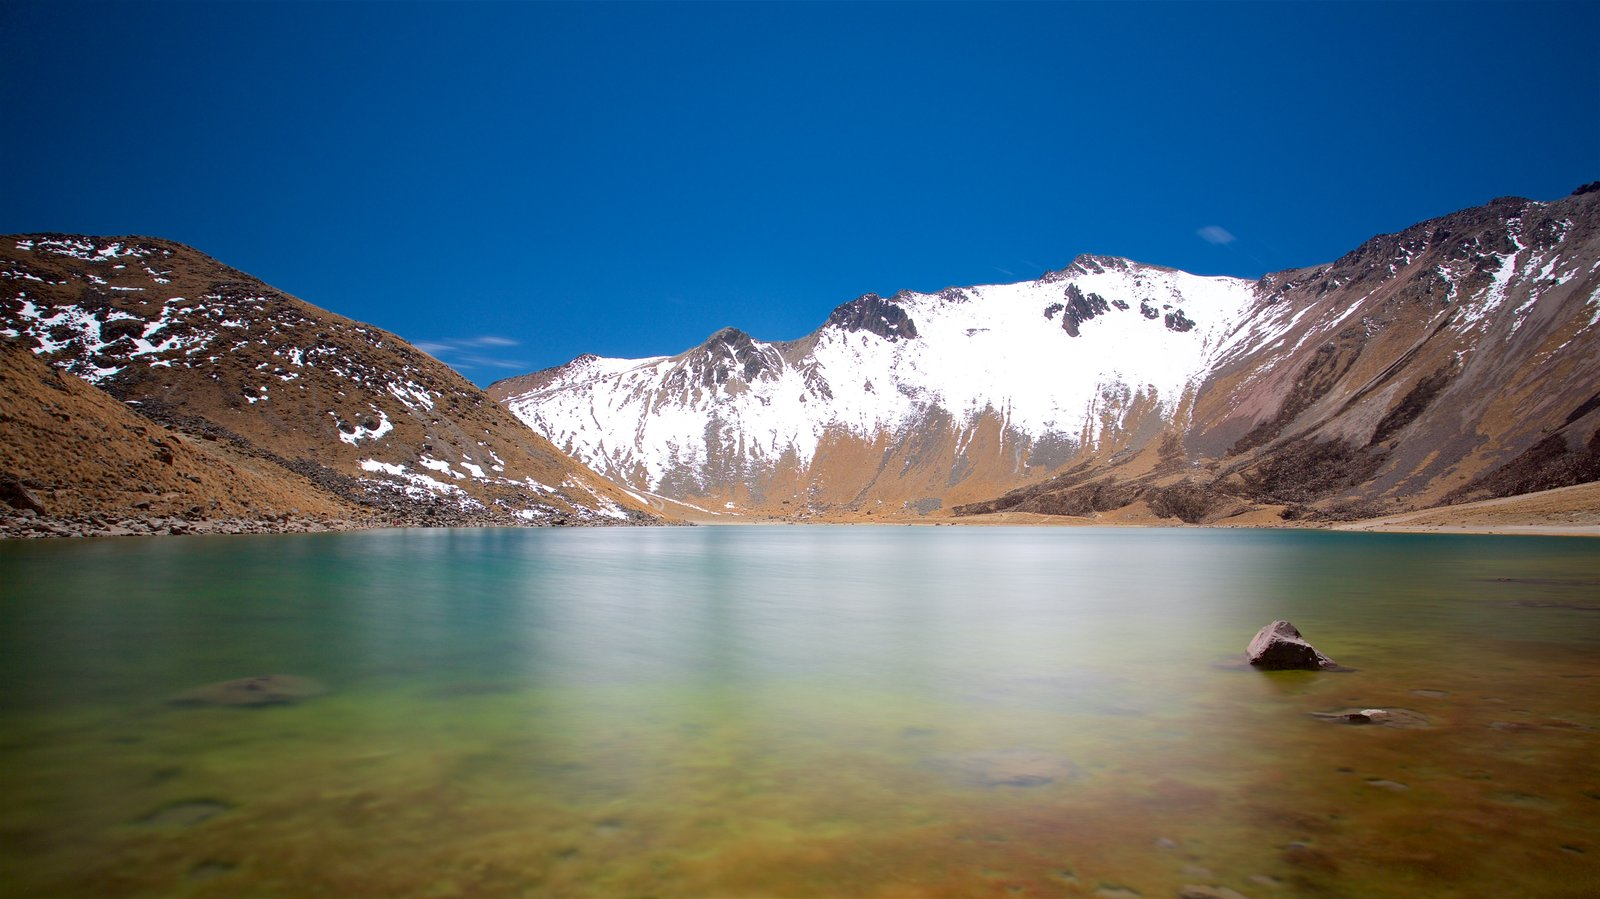 Nevado de Toluca National Park featuring a lake or waterhole, mountains and snow